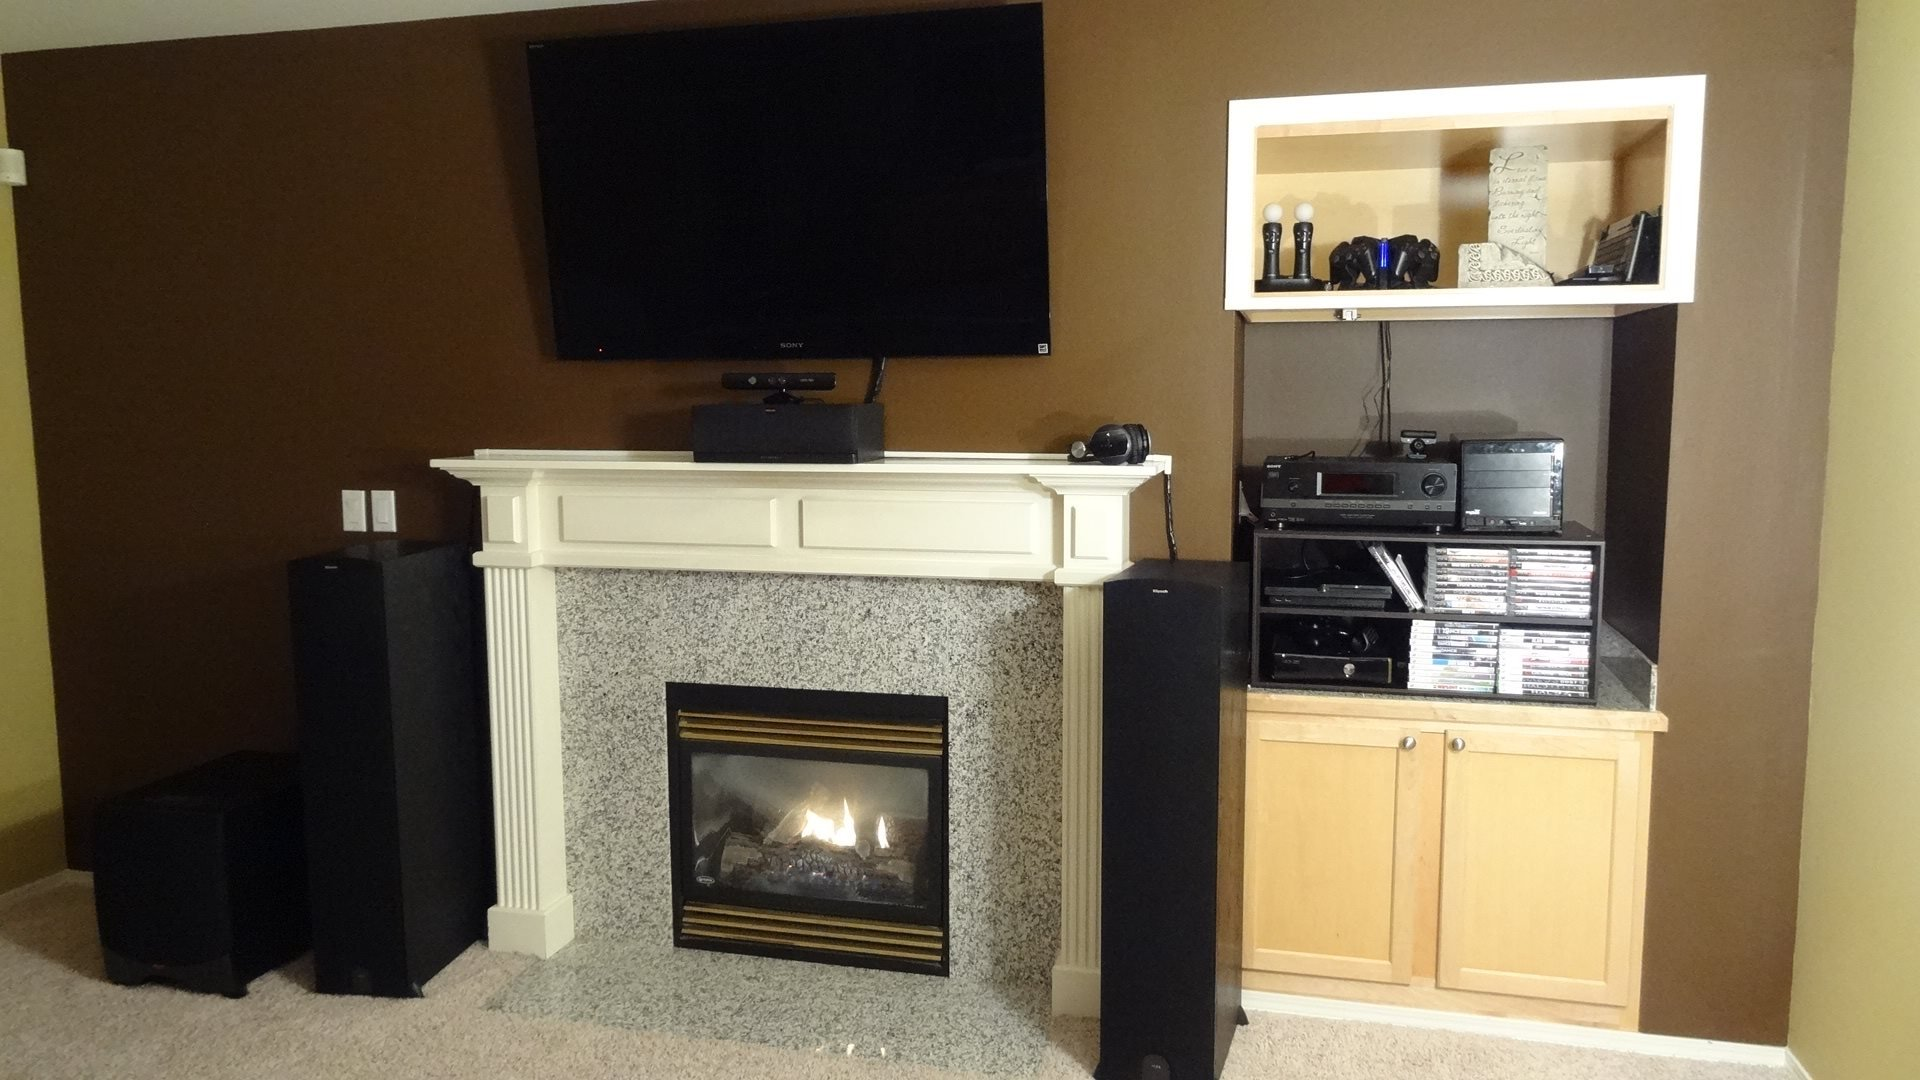 SONY 55HX820 3DTV MOUNTED ABOVE FIREPLACE